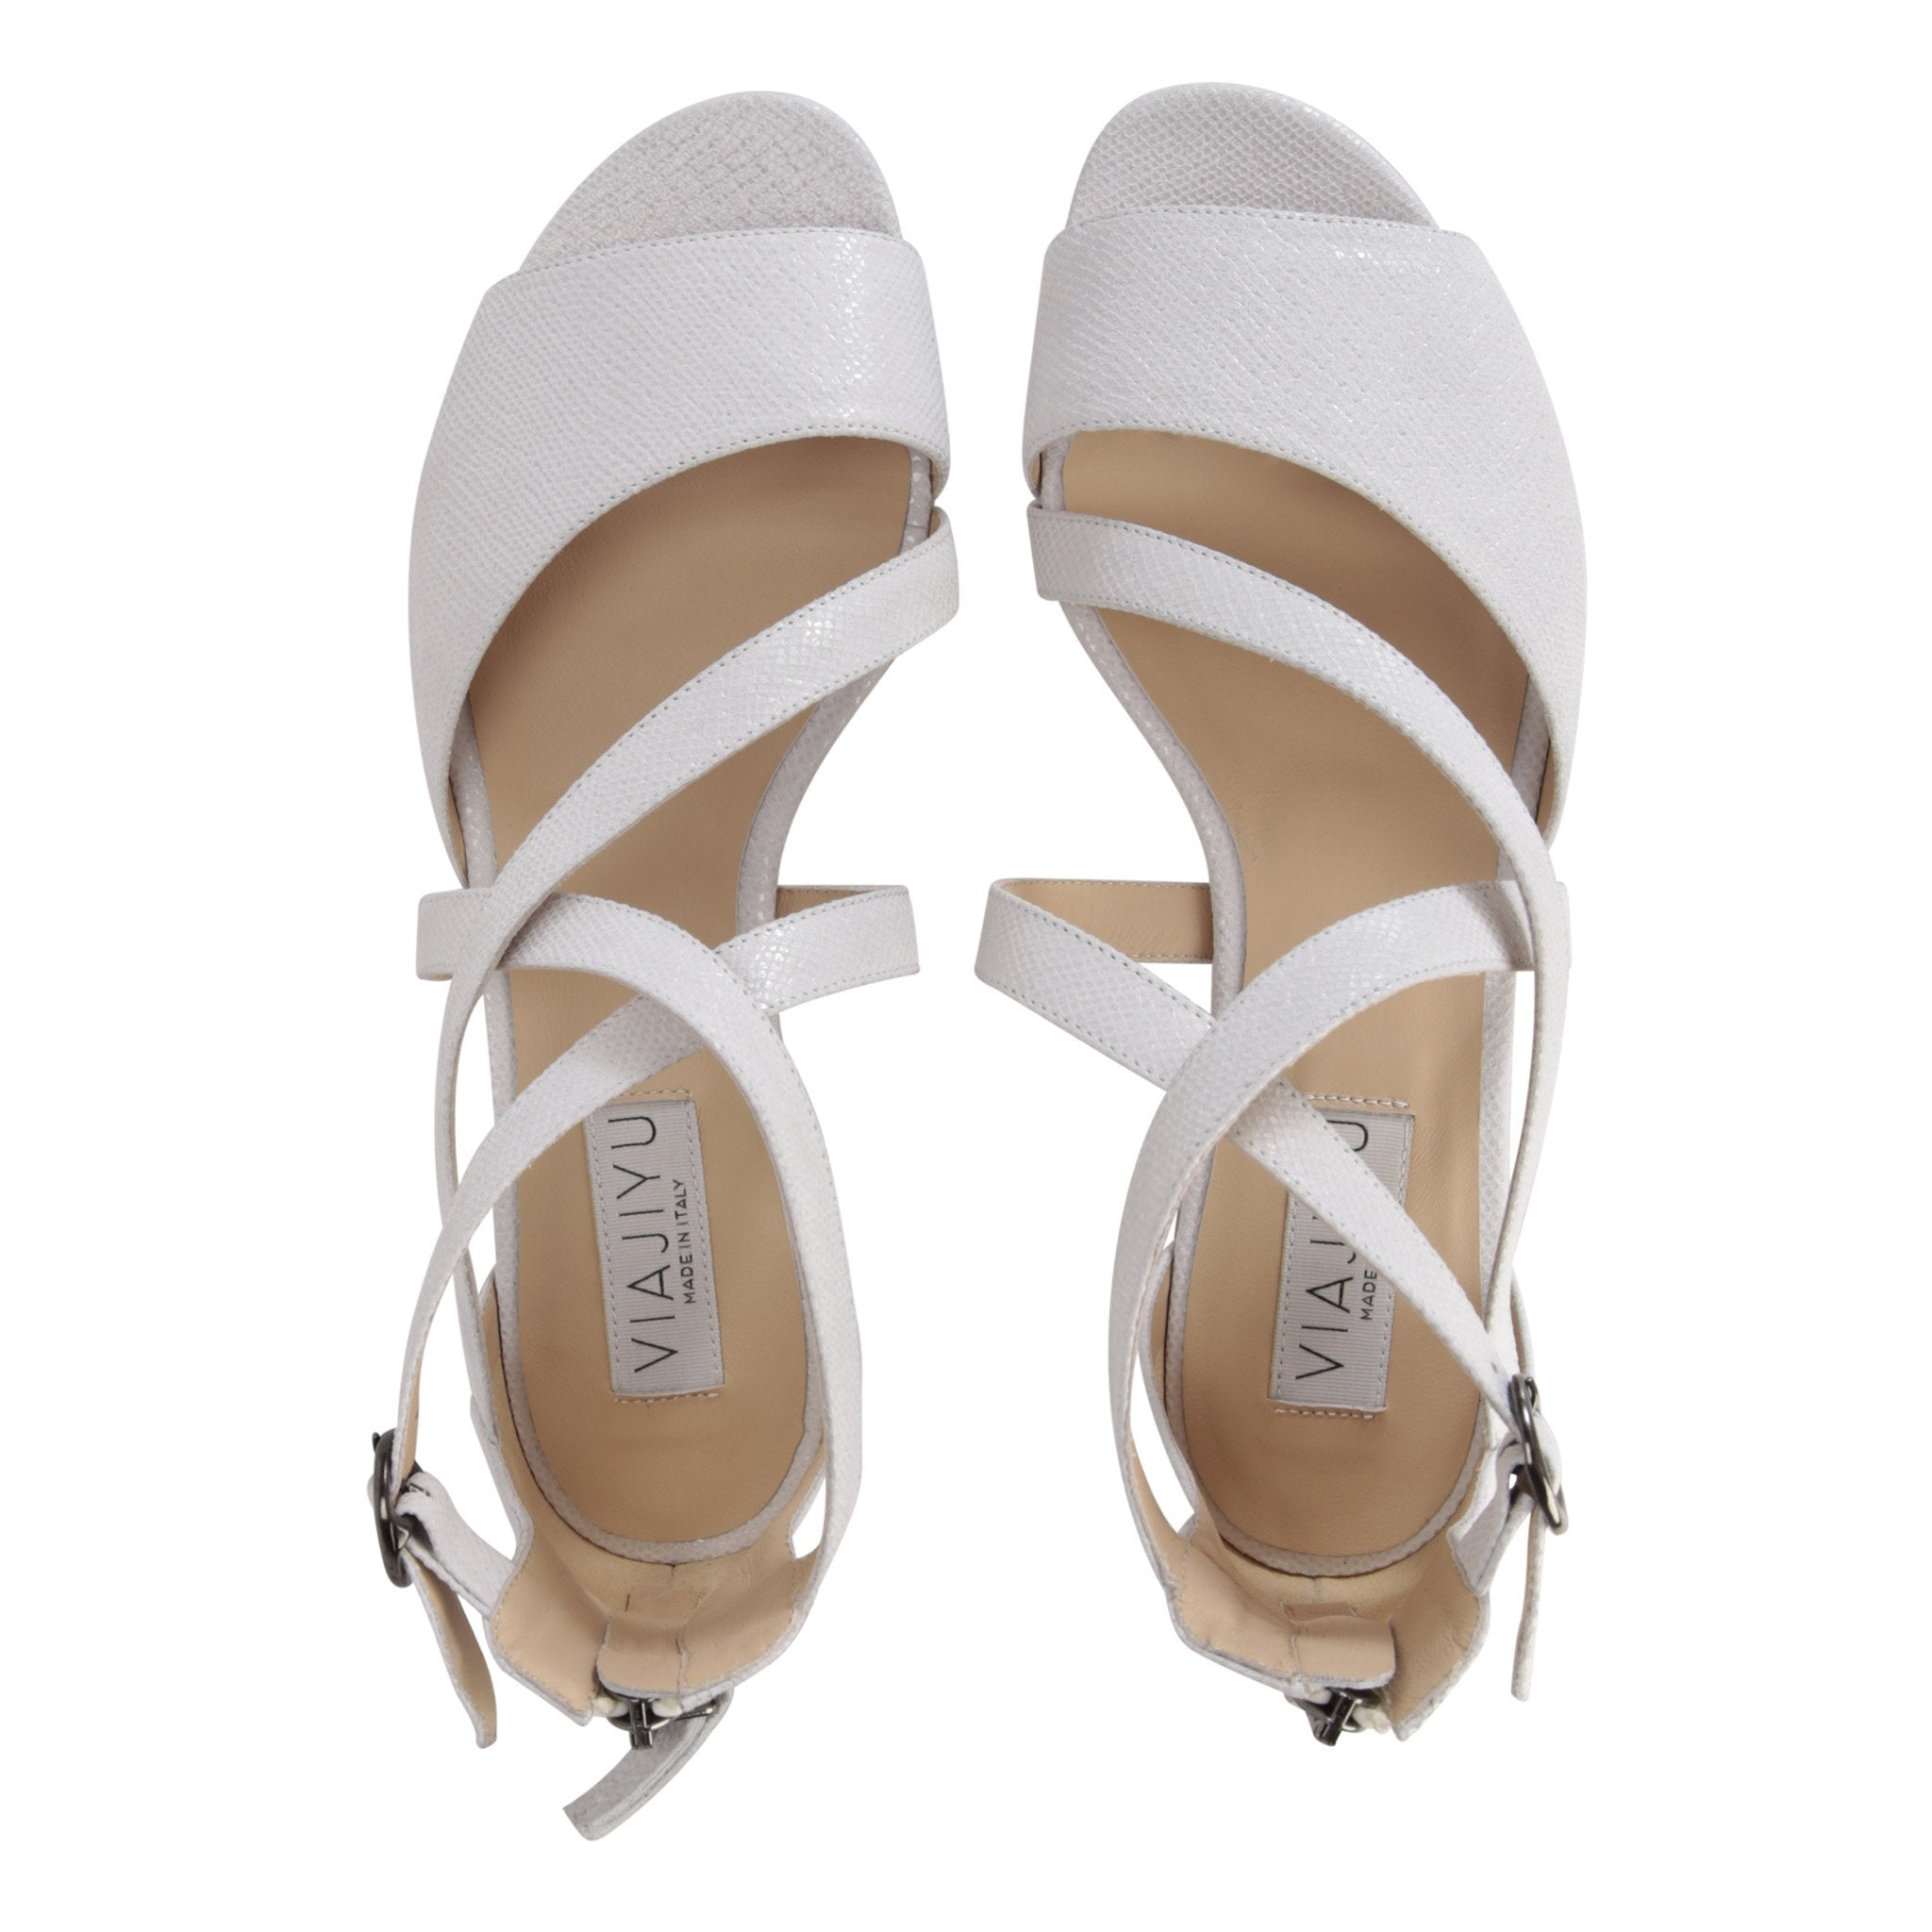 ISCHIA - Karung Bianco, VIAJIYU - Women's Hand Made Sustainable Luxury Shoes. Made in Italy. Made to Order.